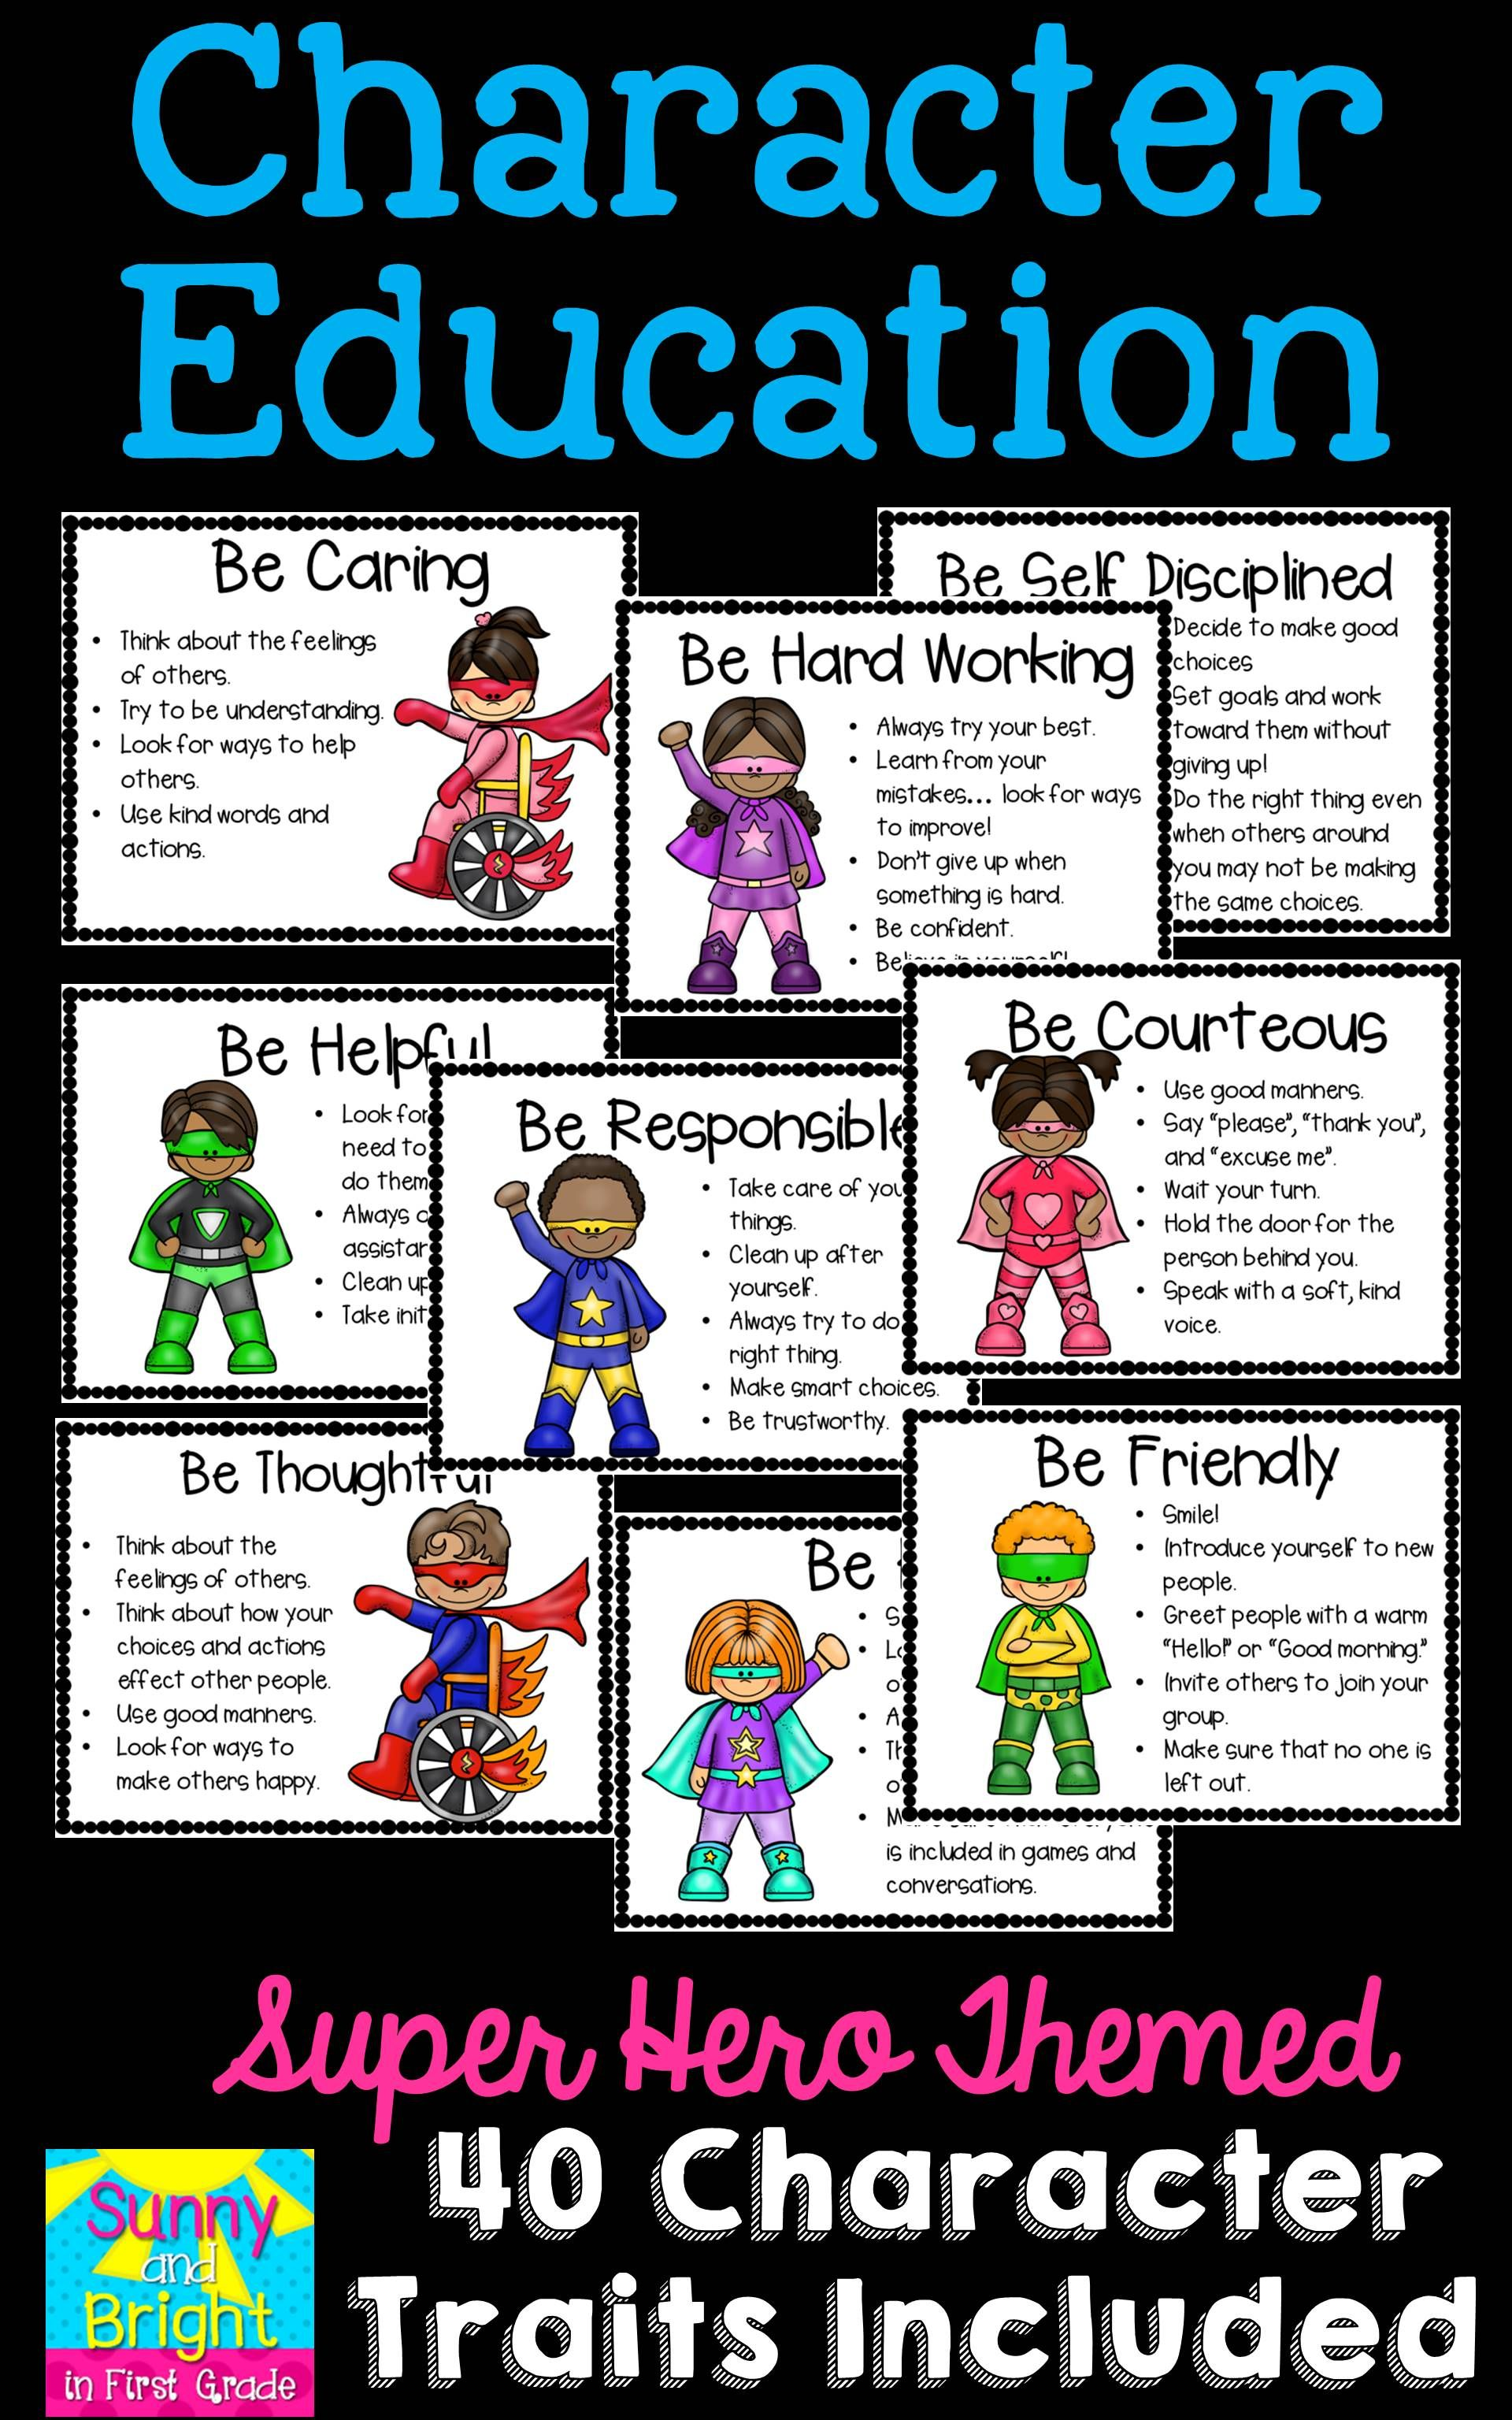 Superhero Themed Character Education Posters | Character education ...